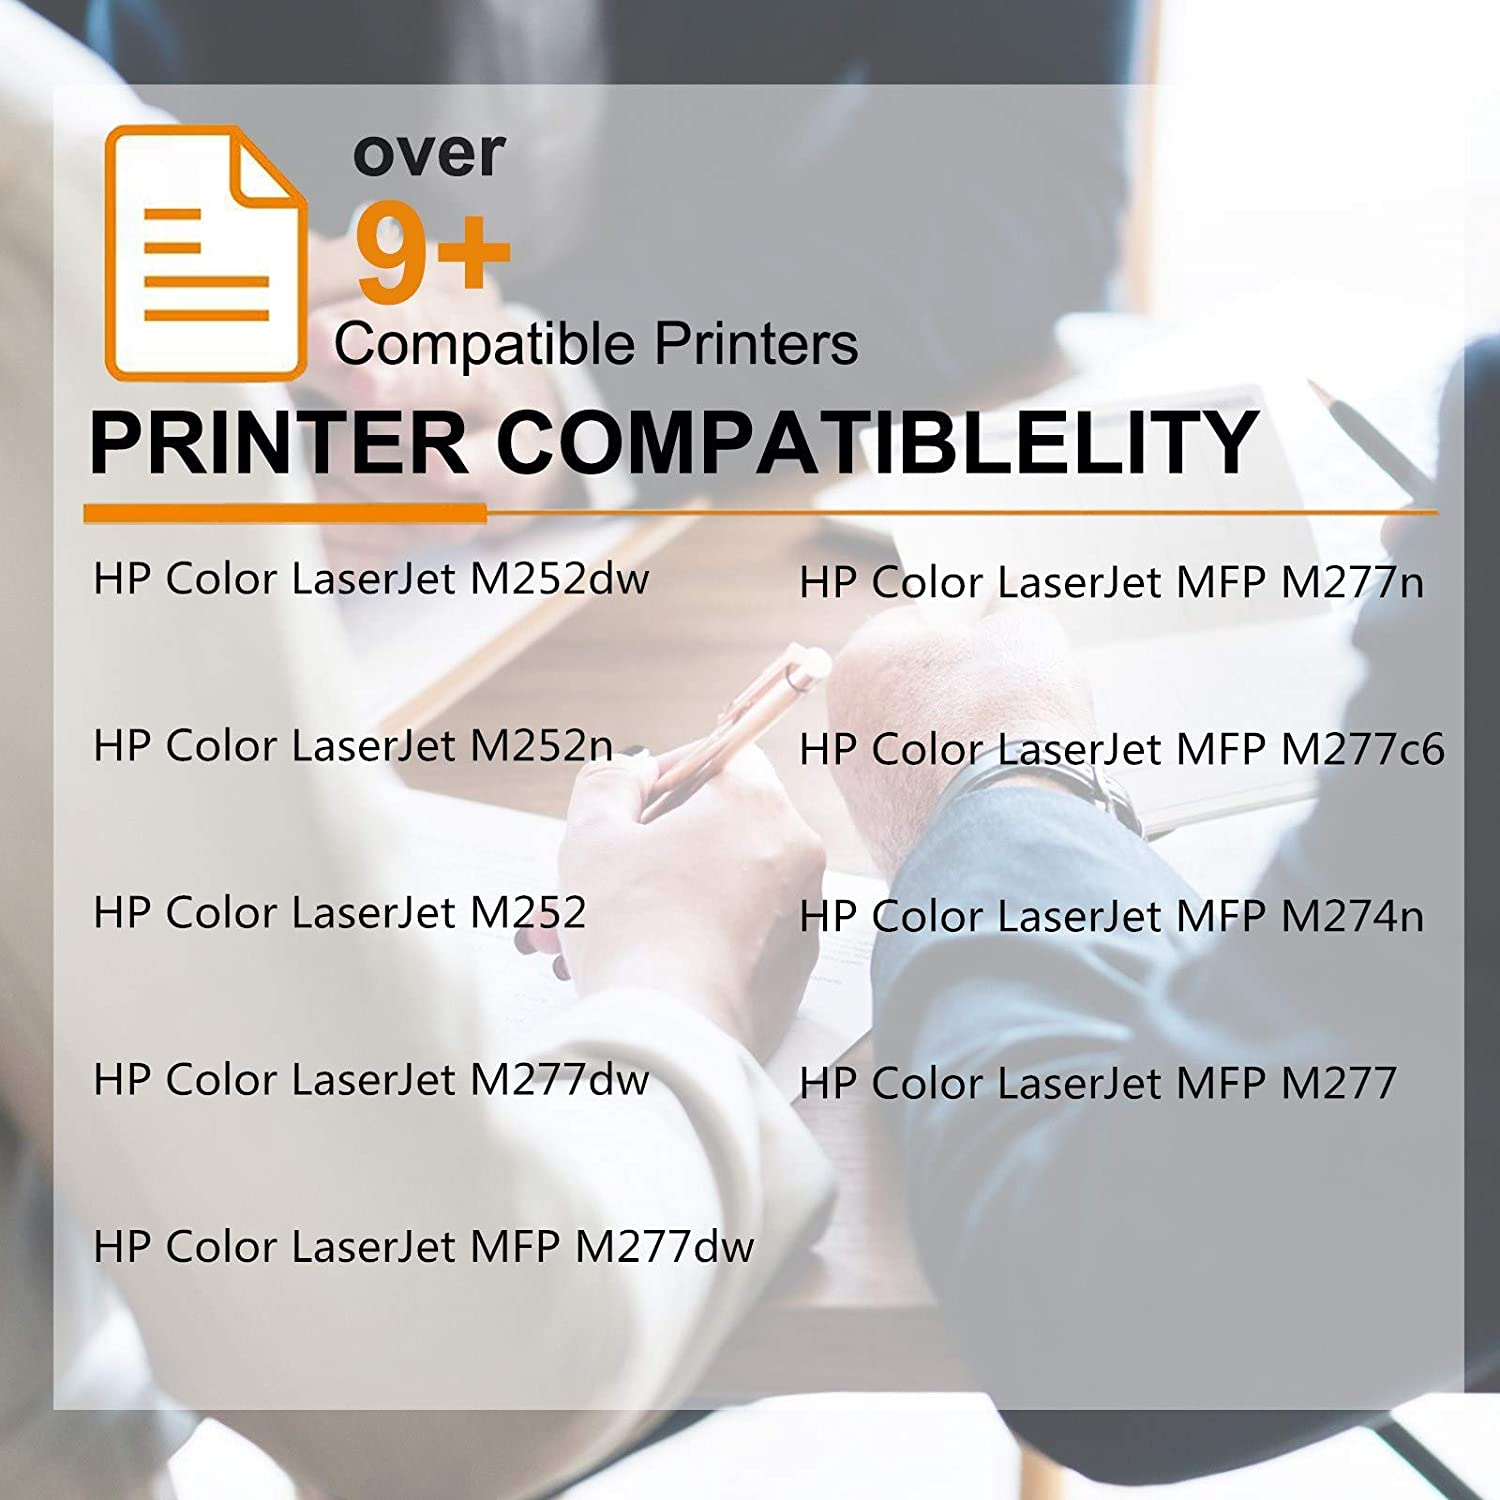 Black,2-Pack GREENCYCLE 2,800 Pages High Yield Toner Cartridge Replacement Compatible for HP 201X 201A CF400X CF400A Used for Color Laserjet M252 M252n M252dw M277 MFP M277dw MFP M277c6